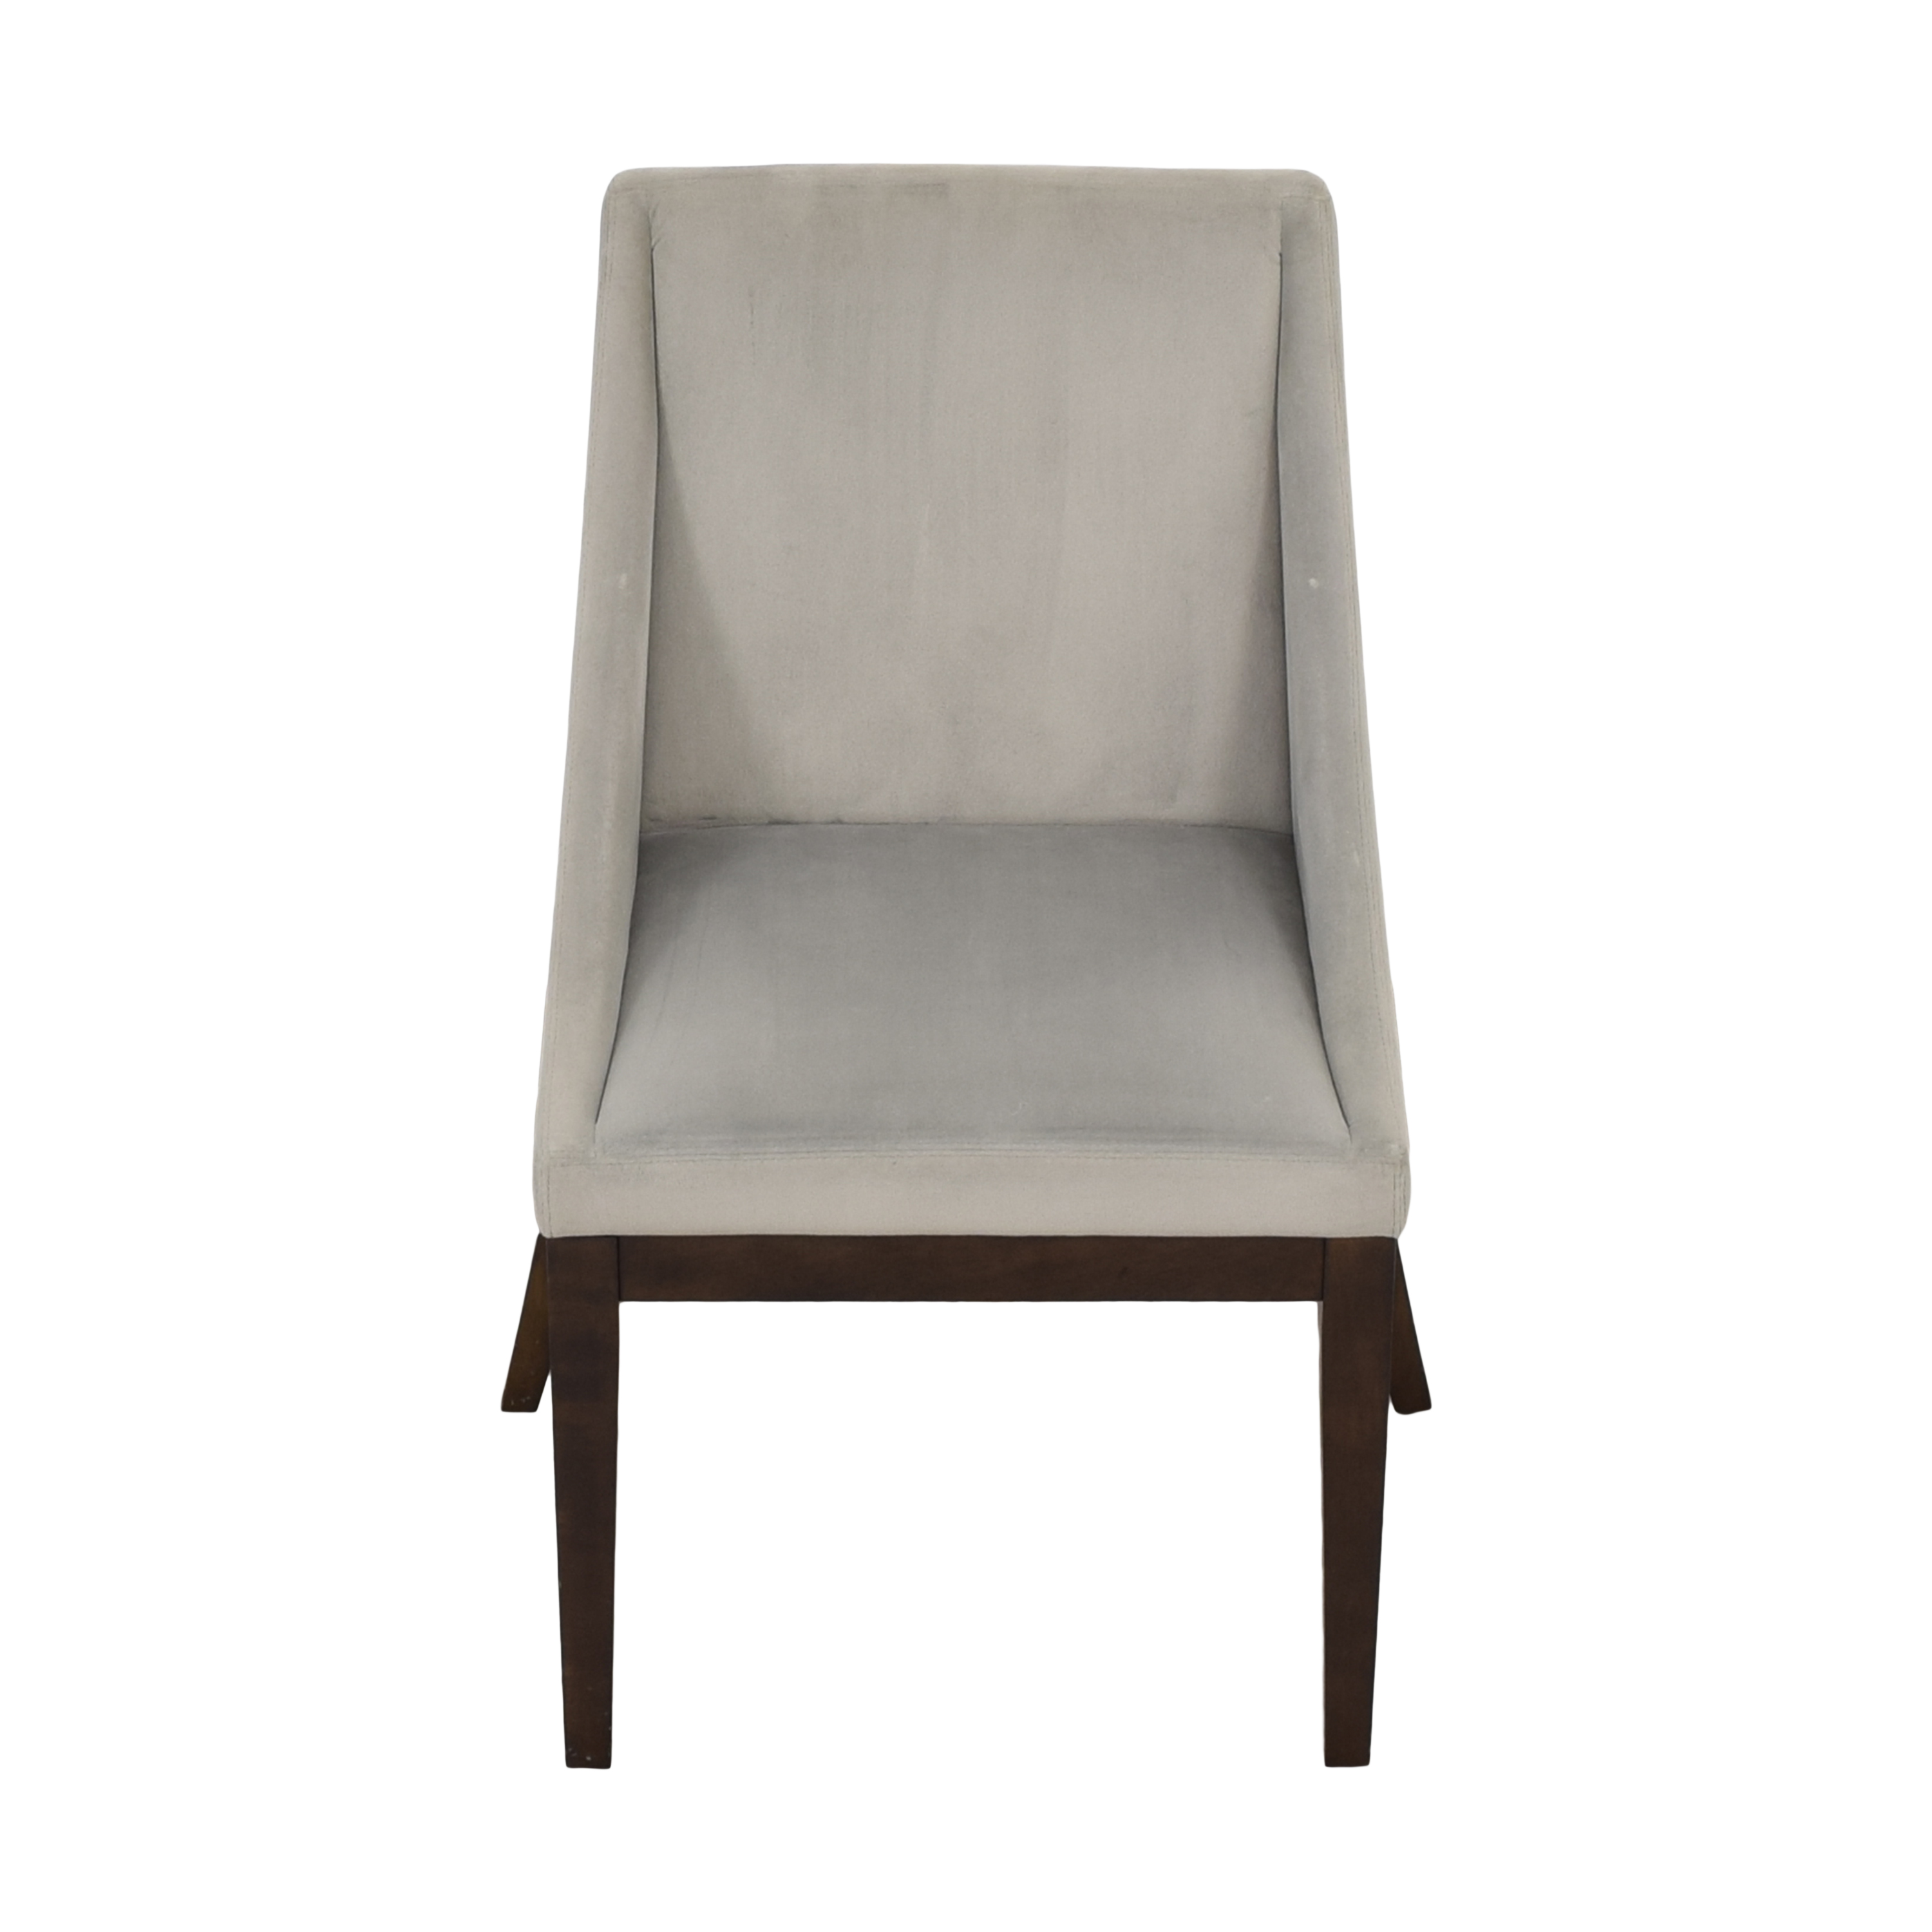 West Elm West Elm Curved Upholstered Dining Chair discount